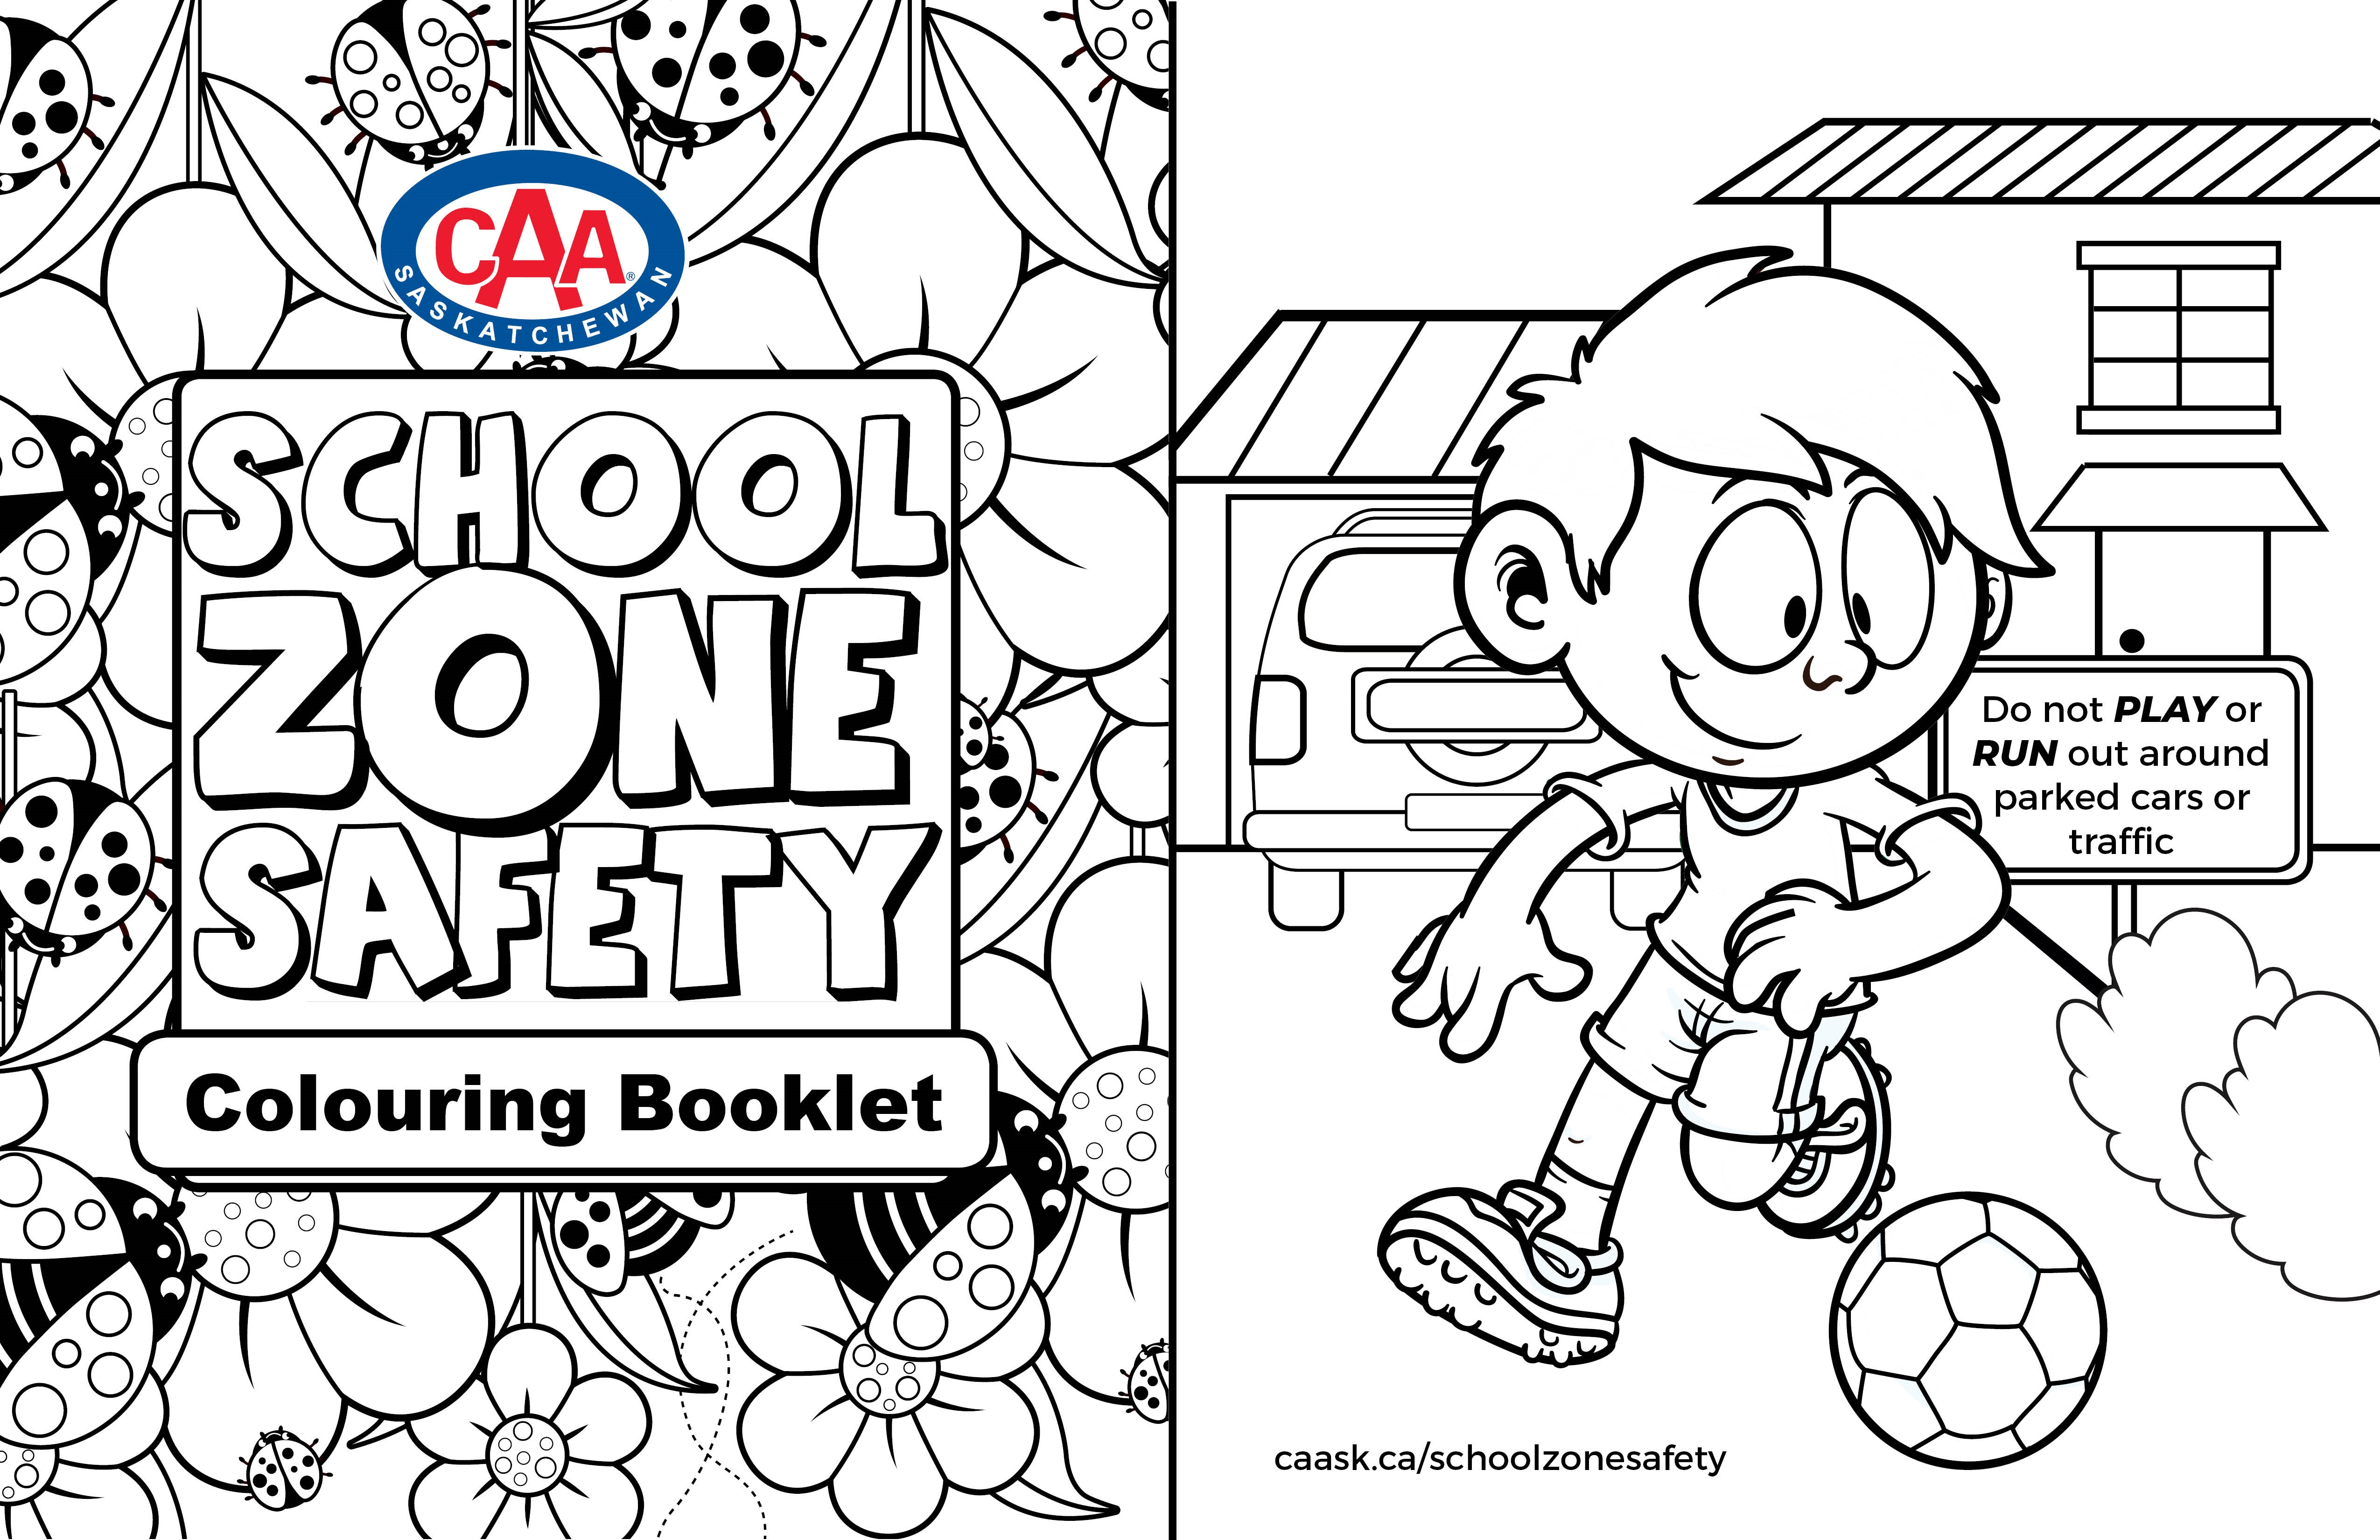 CAA School Zone Safety Colouring Booklet